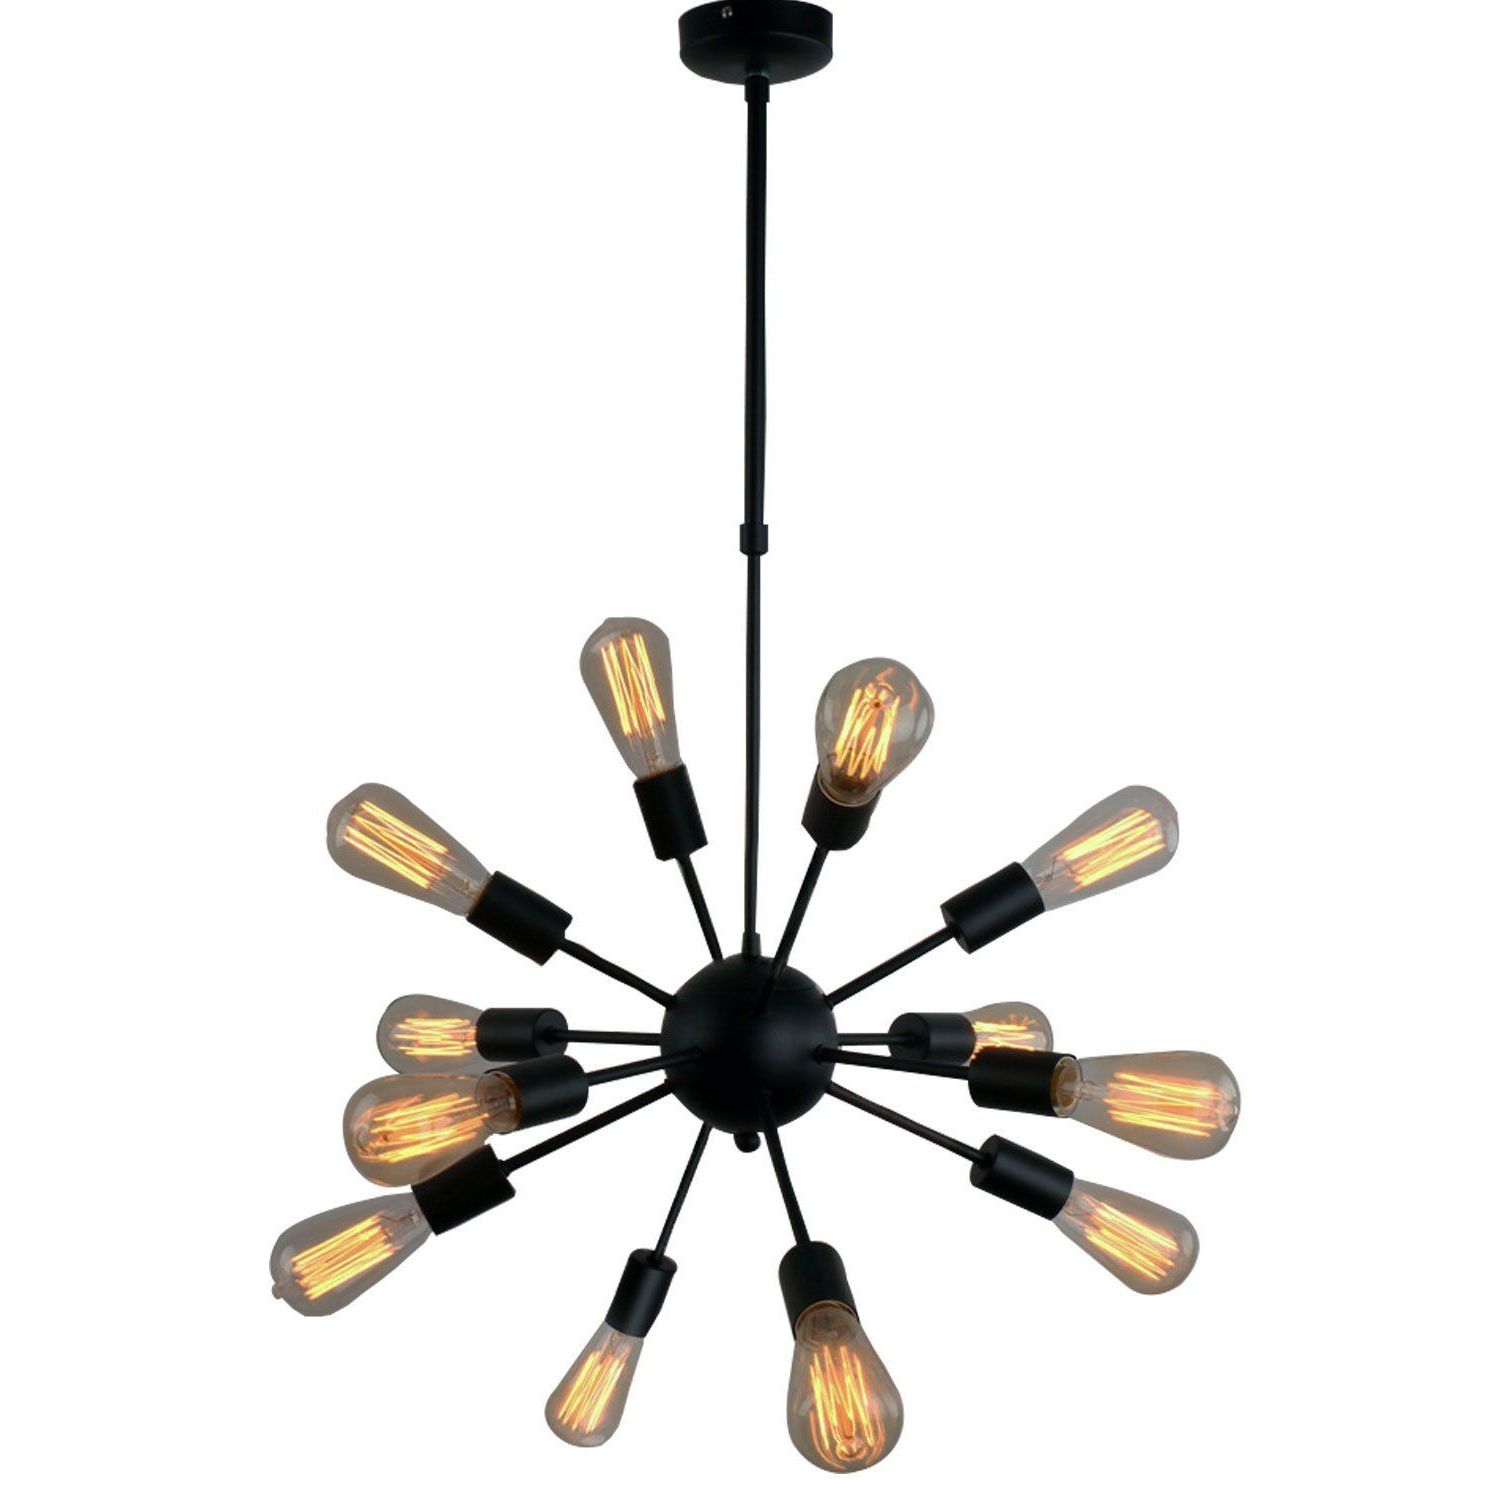 Best And Newest Lamp: Vintage Metal Large Dimmable Sputnik Chandelier With Intended For Vroman 12 Light Sputnik Chandeliers (View 4 of 20)